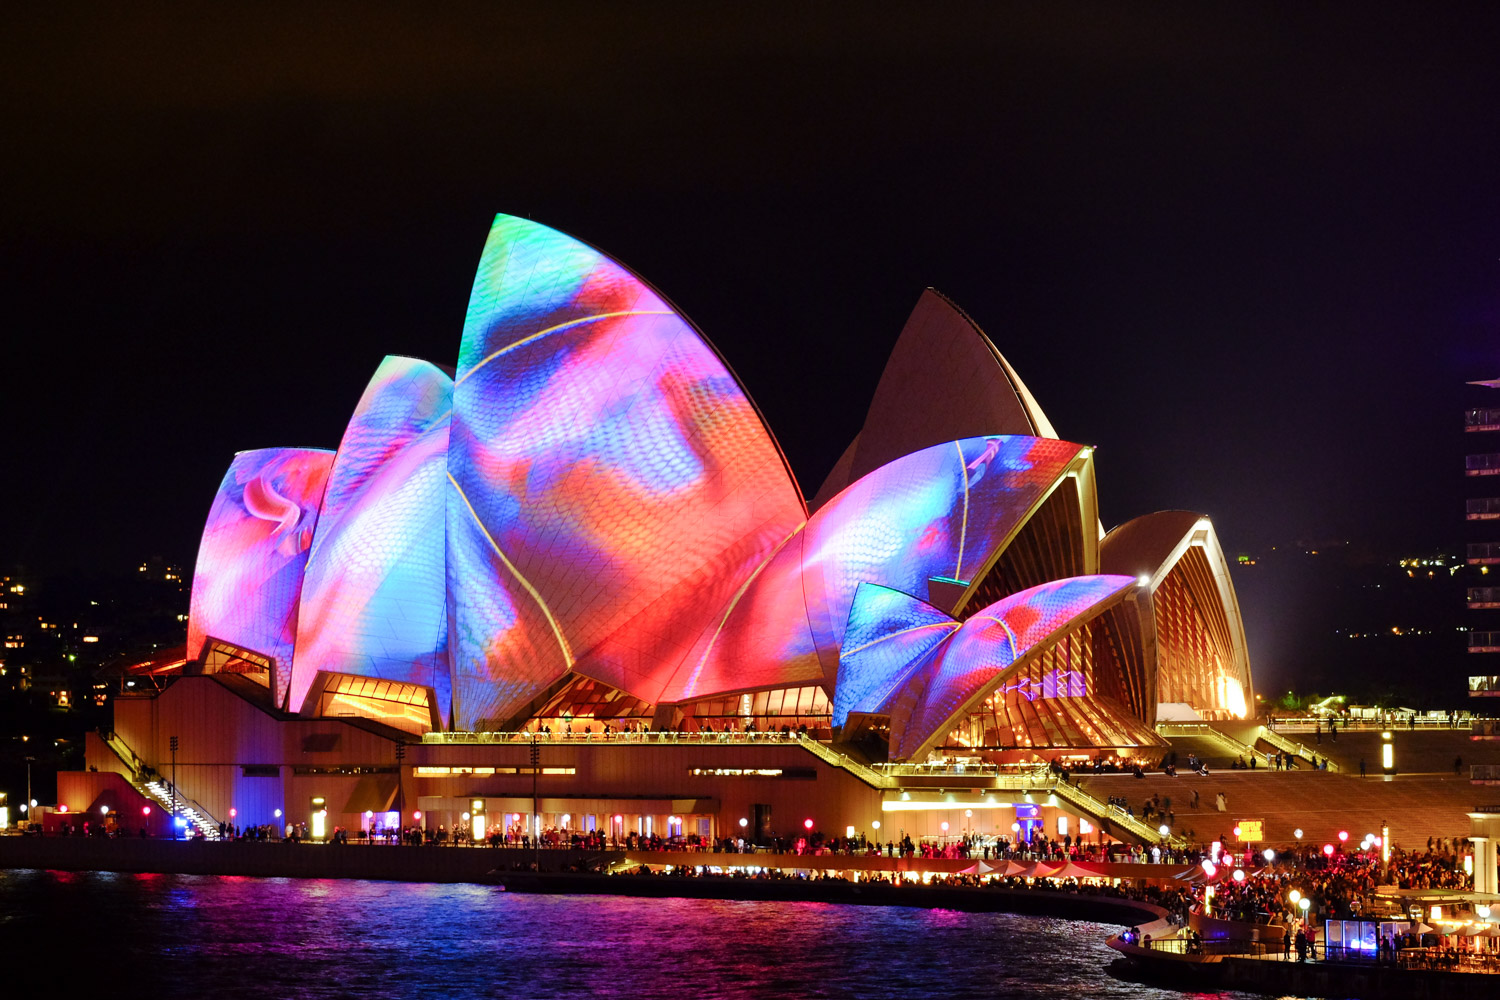 Image: OIS is a solution, sometimes even when shooting on a tripod. Sydney Opera House during Vivid F ...